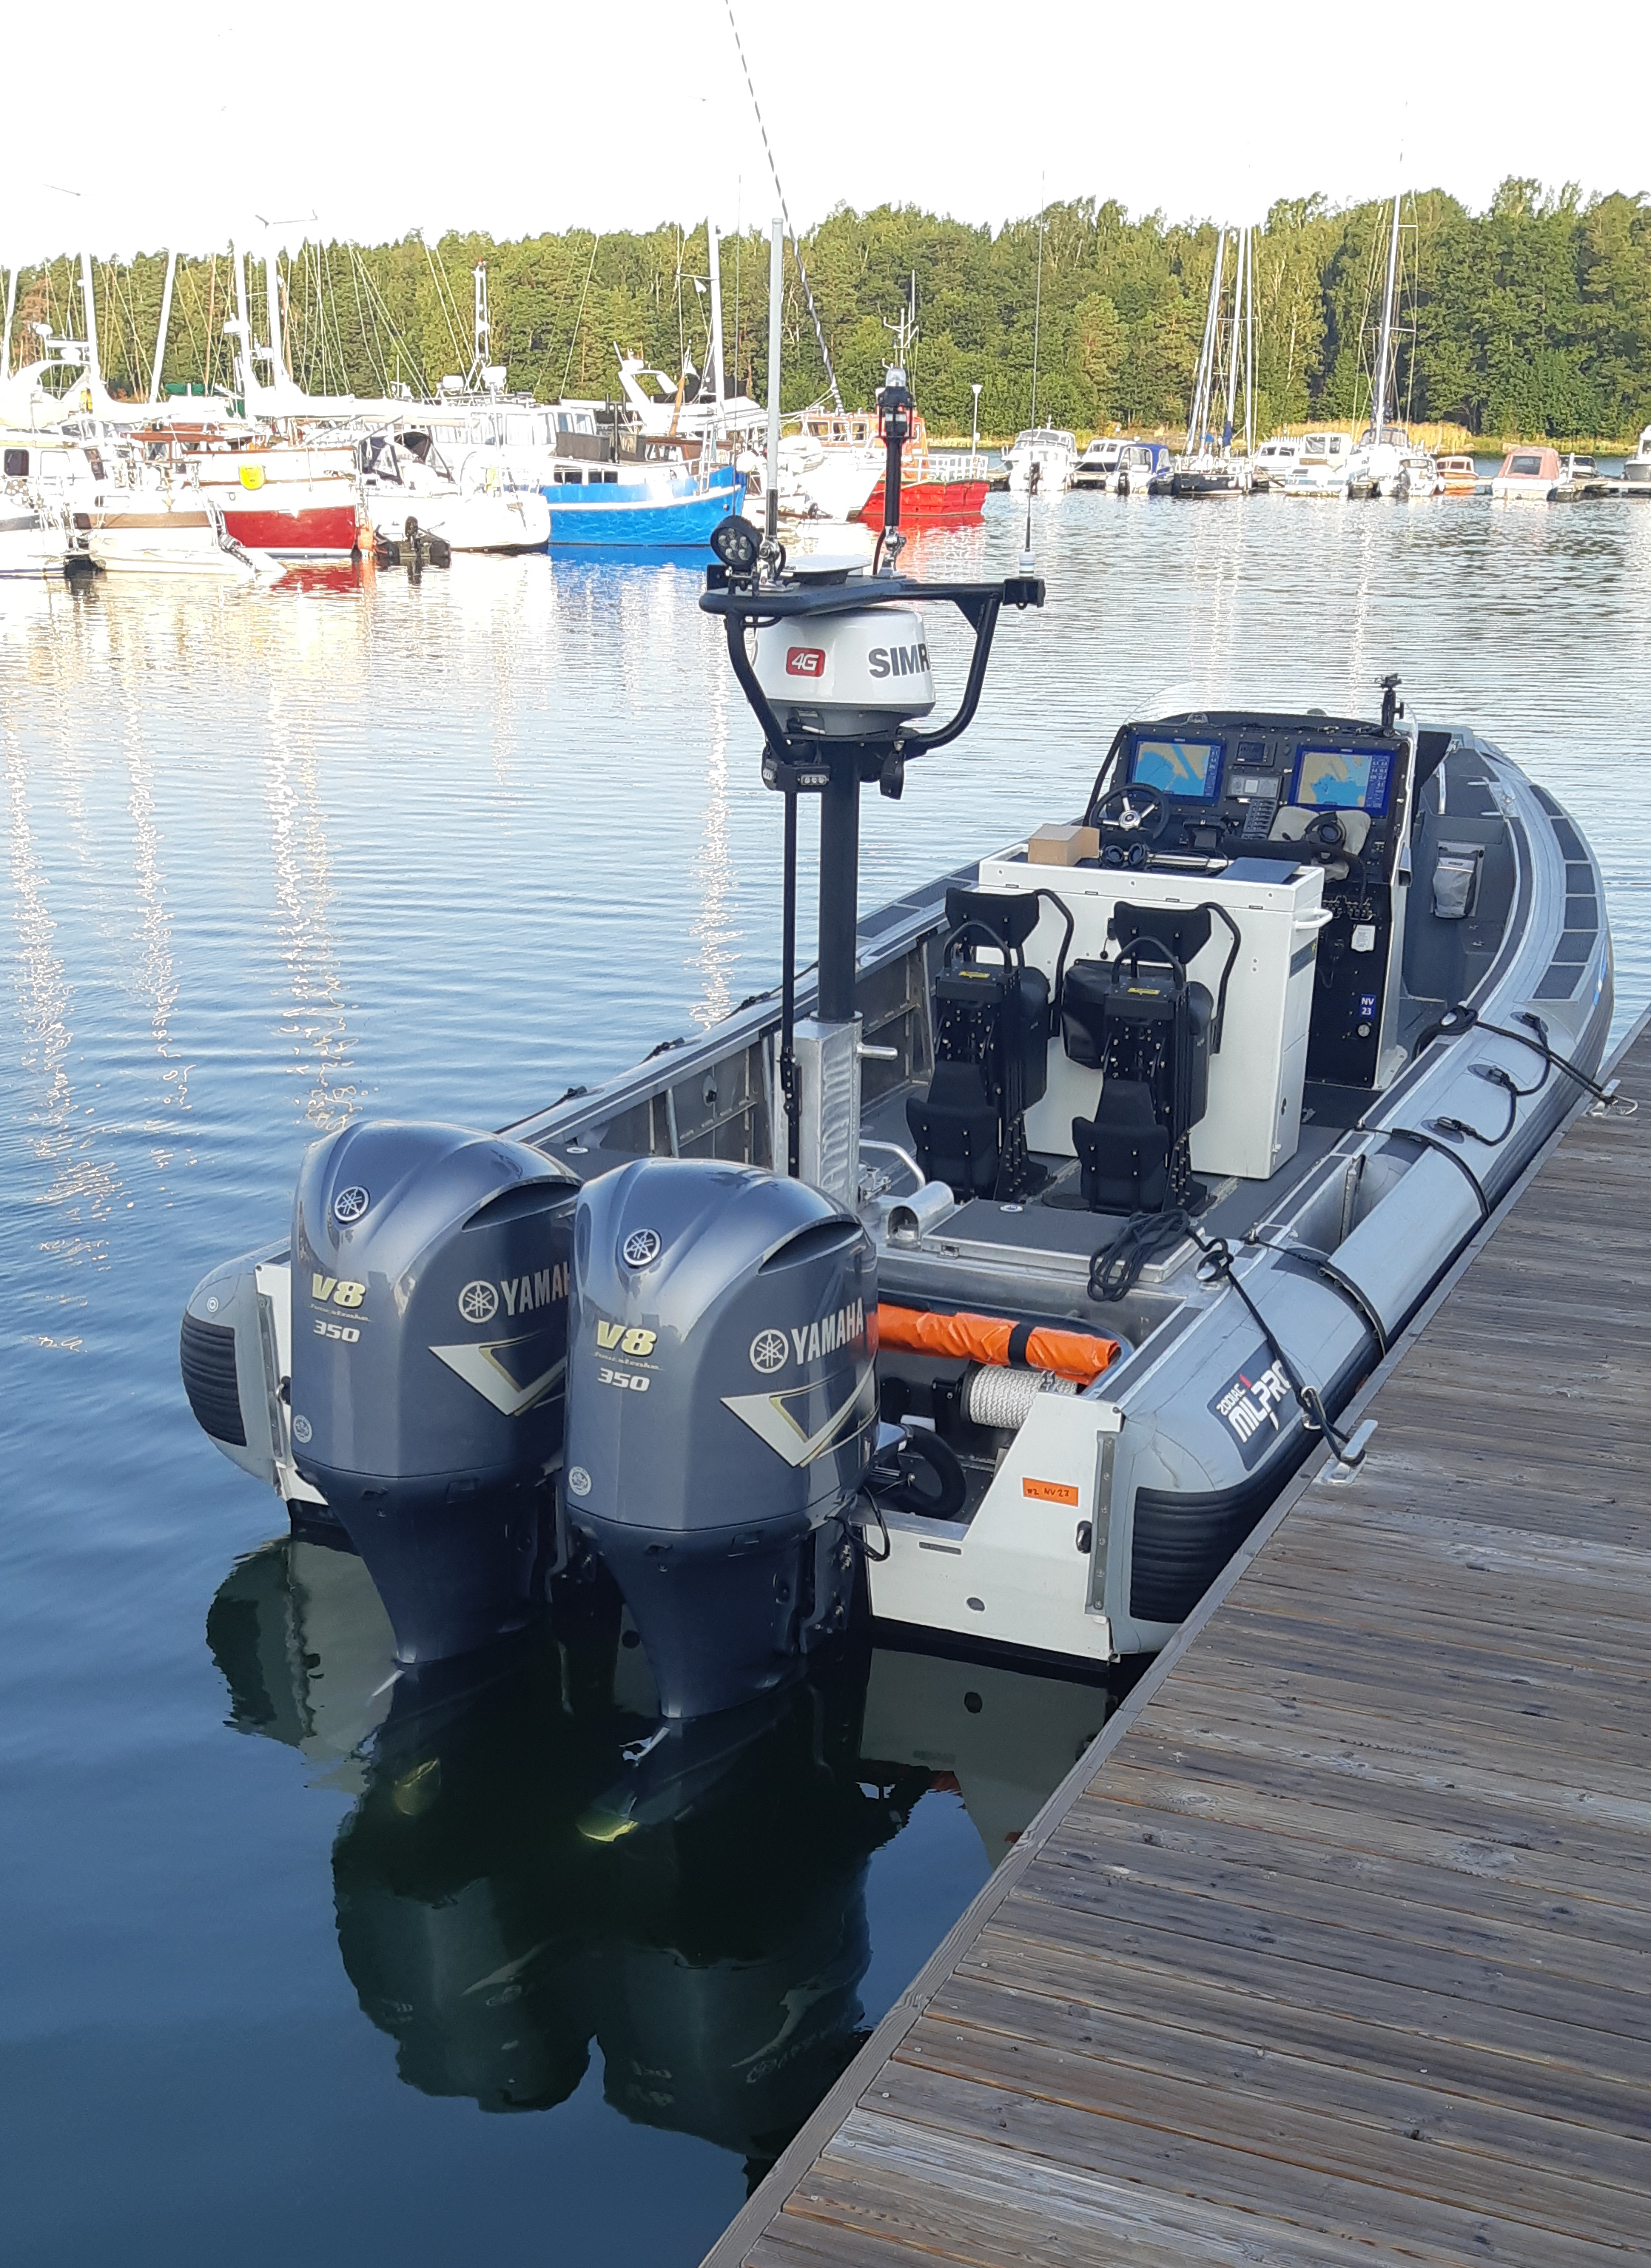 100% PRO Finnish Coast Gard new patrol boat with 100% biocide free Seaboost Overdrive antifouling paint.